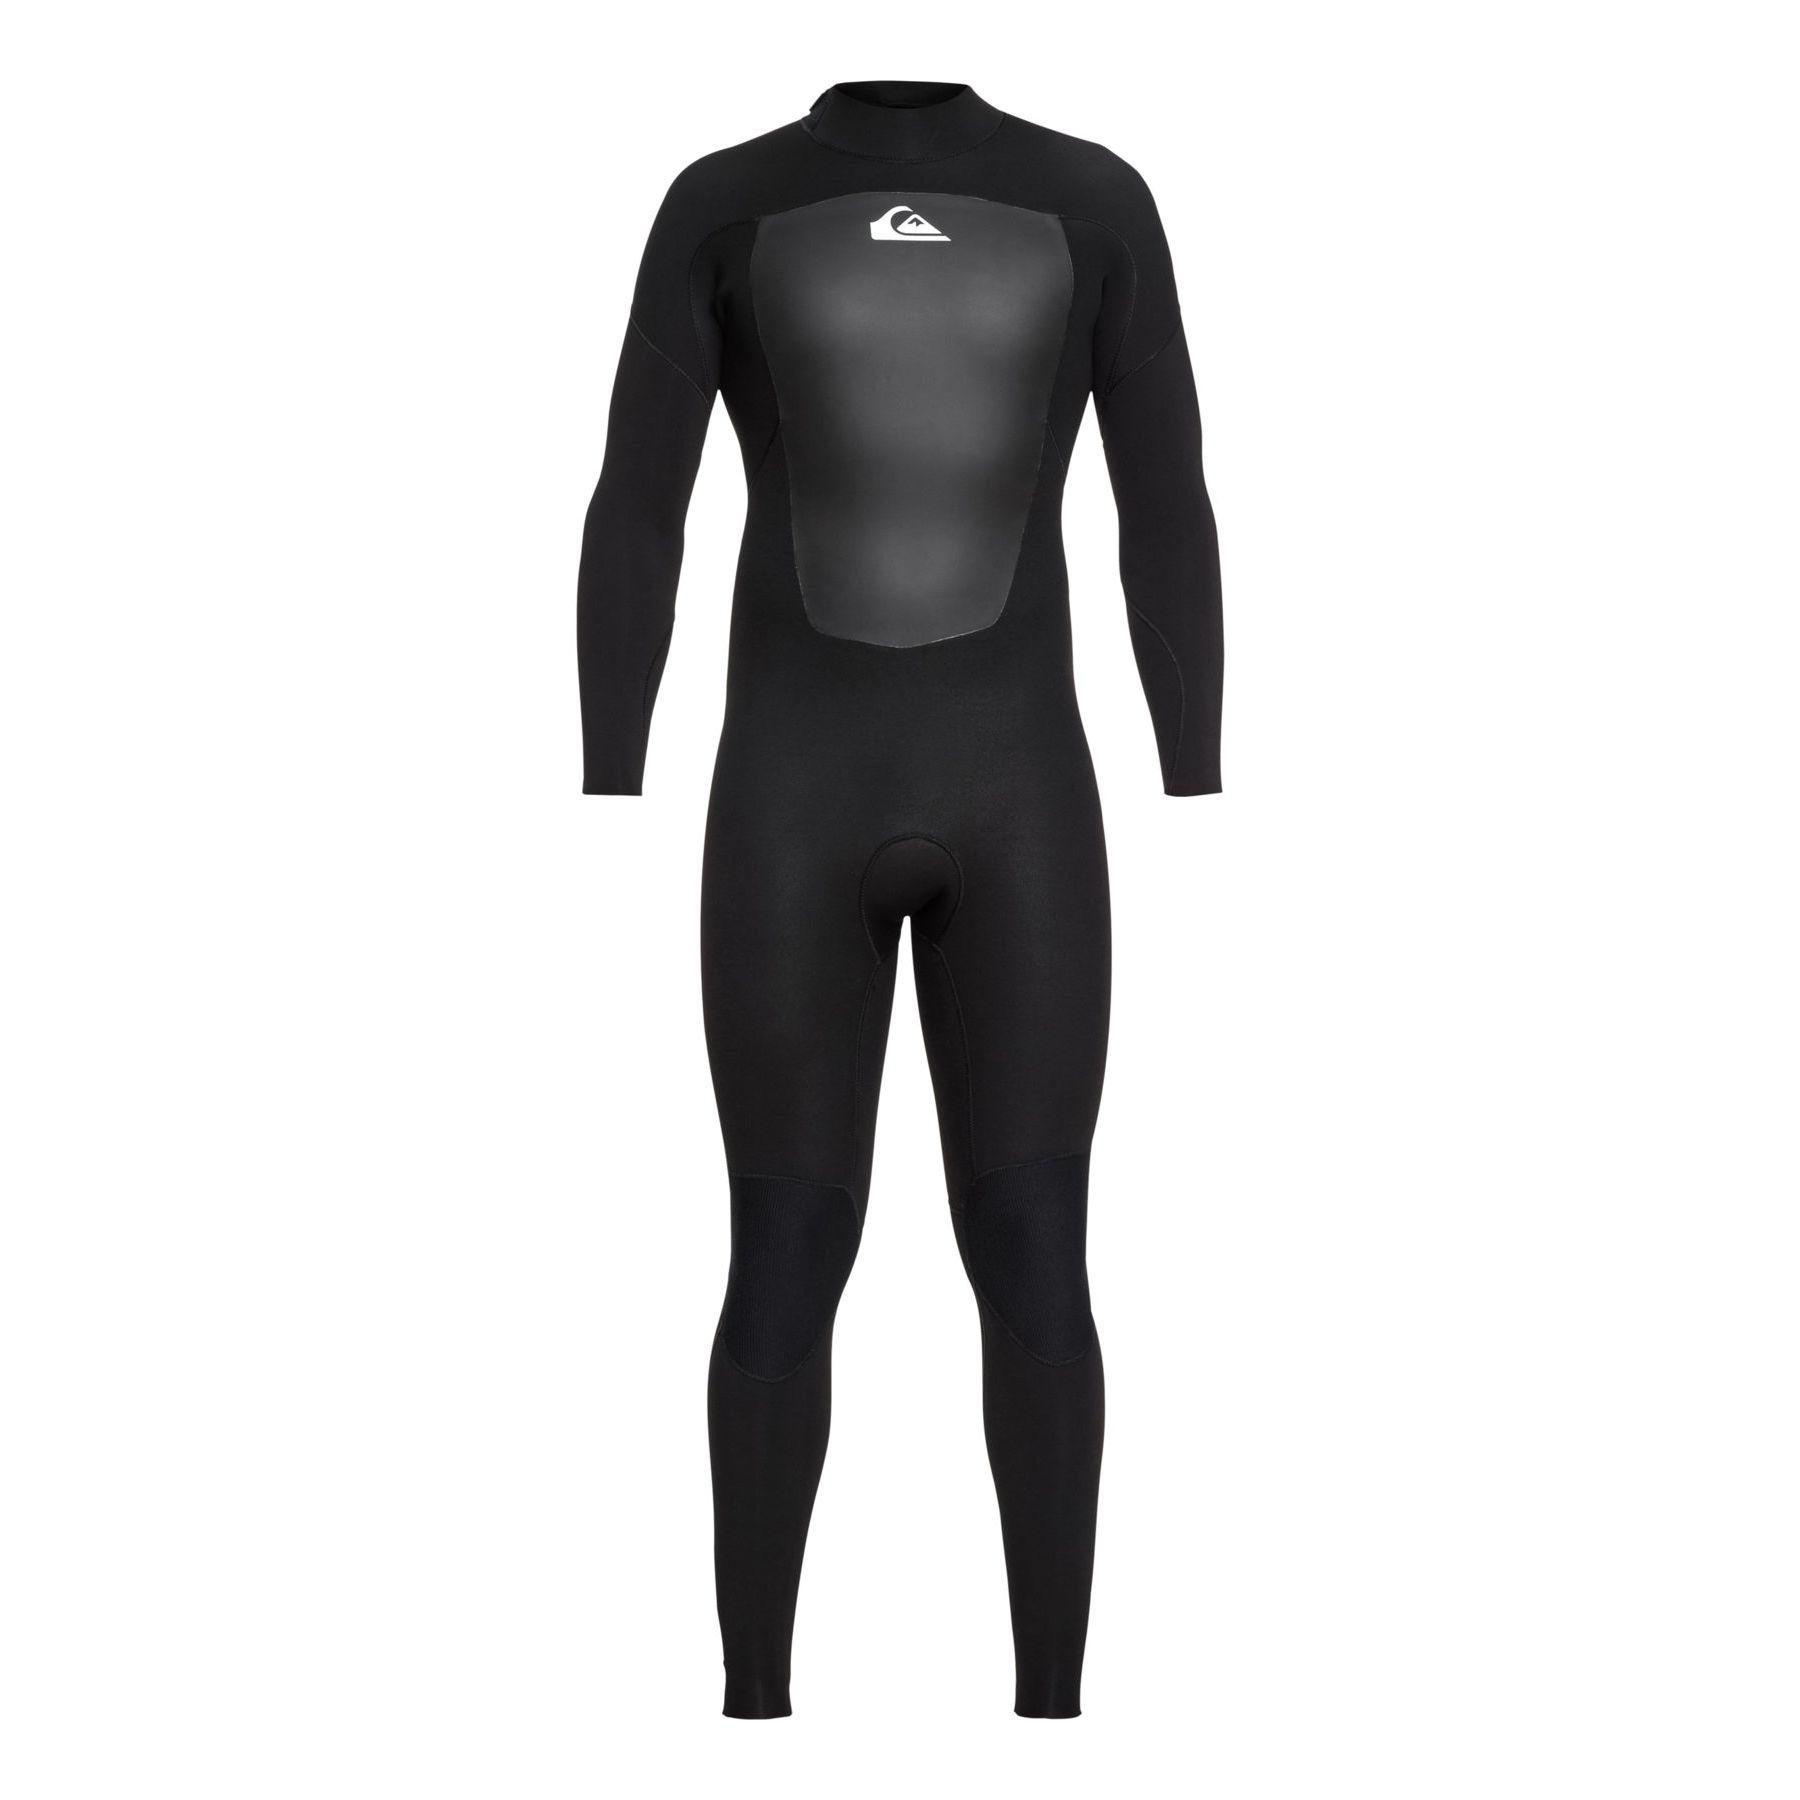 Quiksilver Prologue 5/4/3mm Back Zip Wetsuit